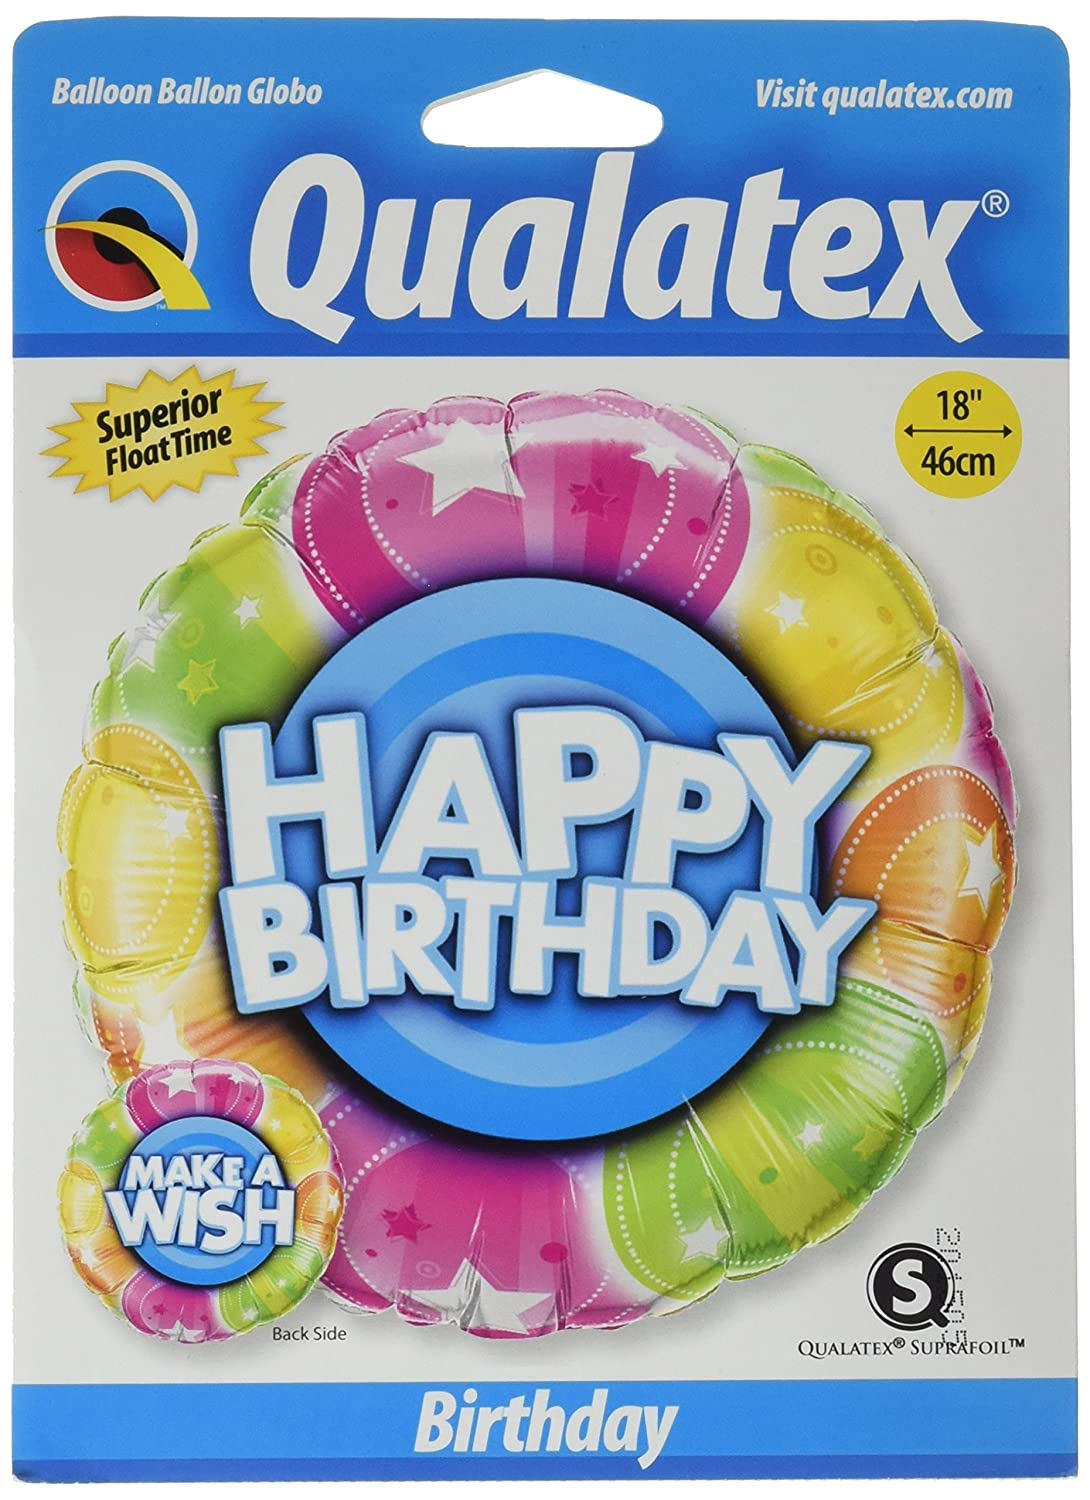 PIONEER BALLOON COMPANY Bday Make a Wish Foil Pack Multicolor 18